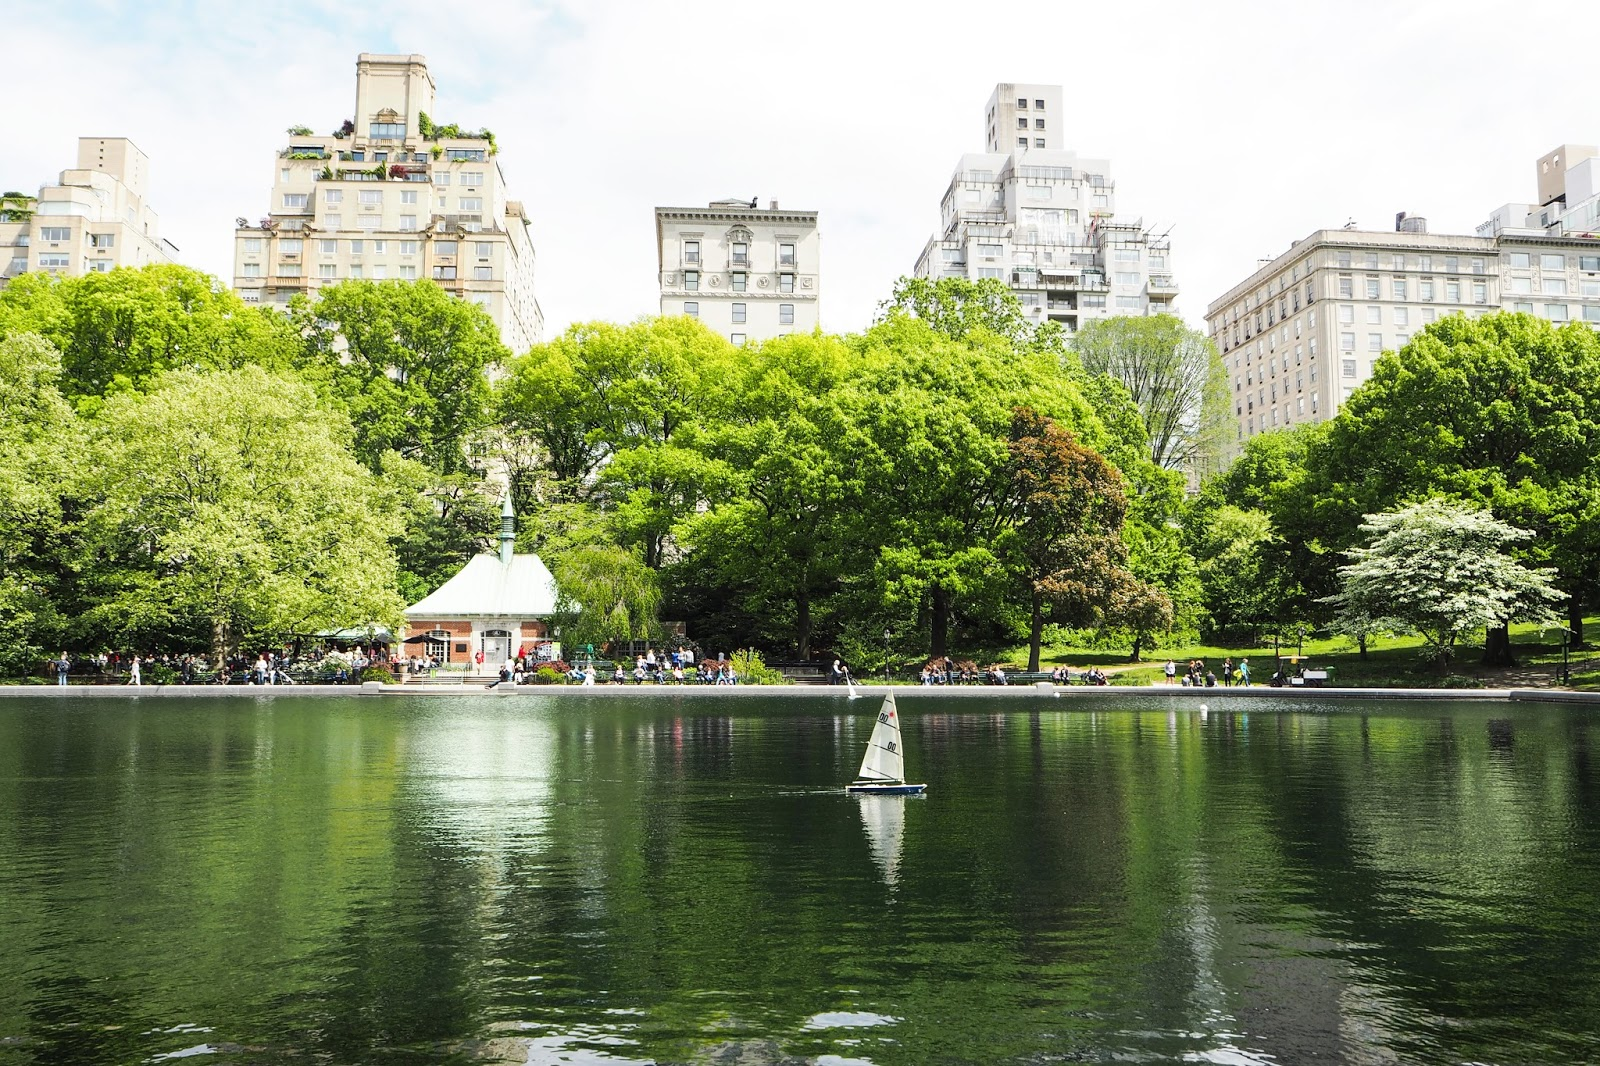 Boating Pond in Central Park